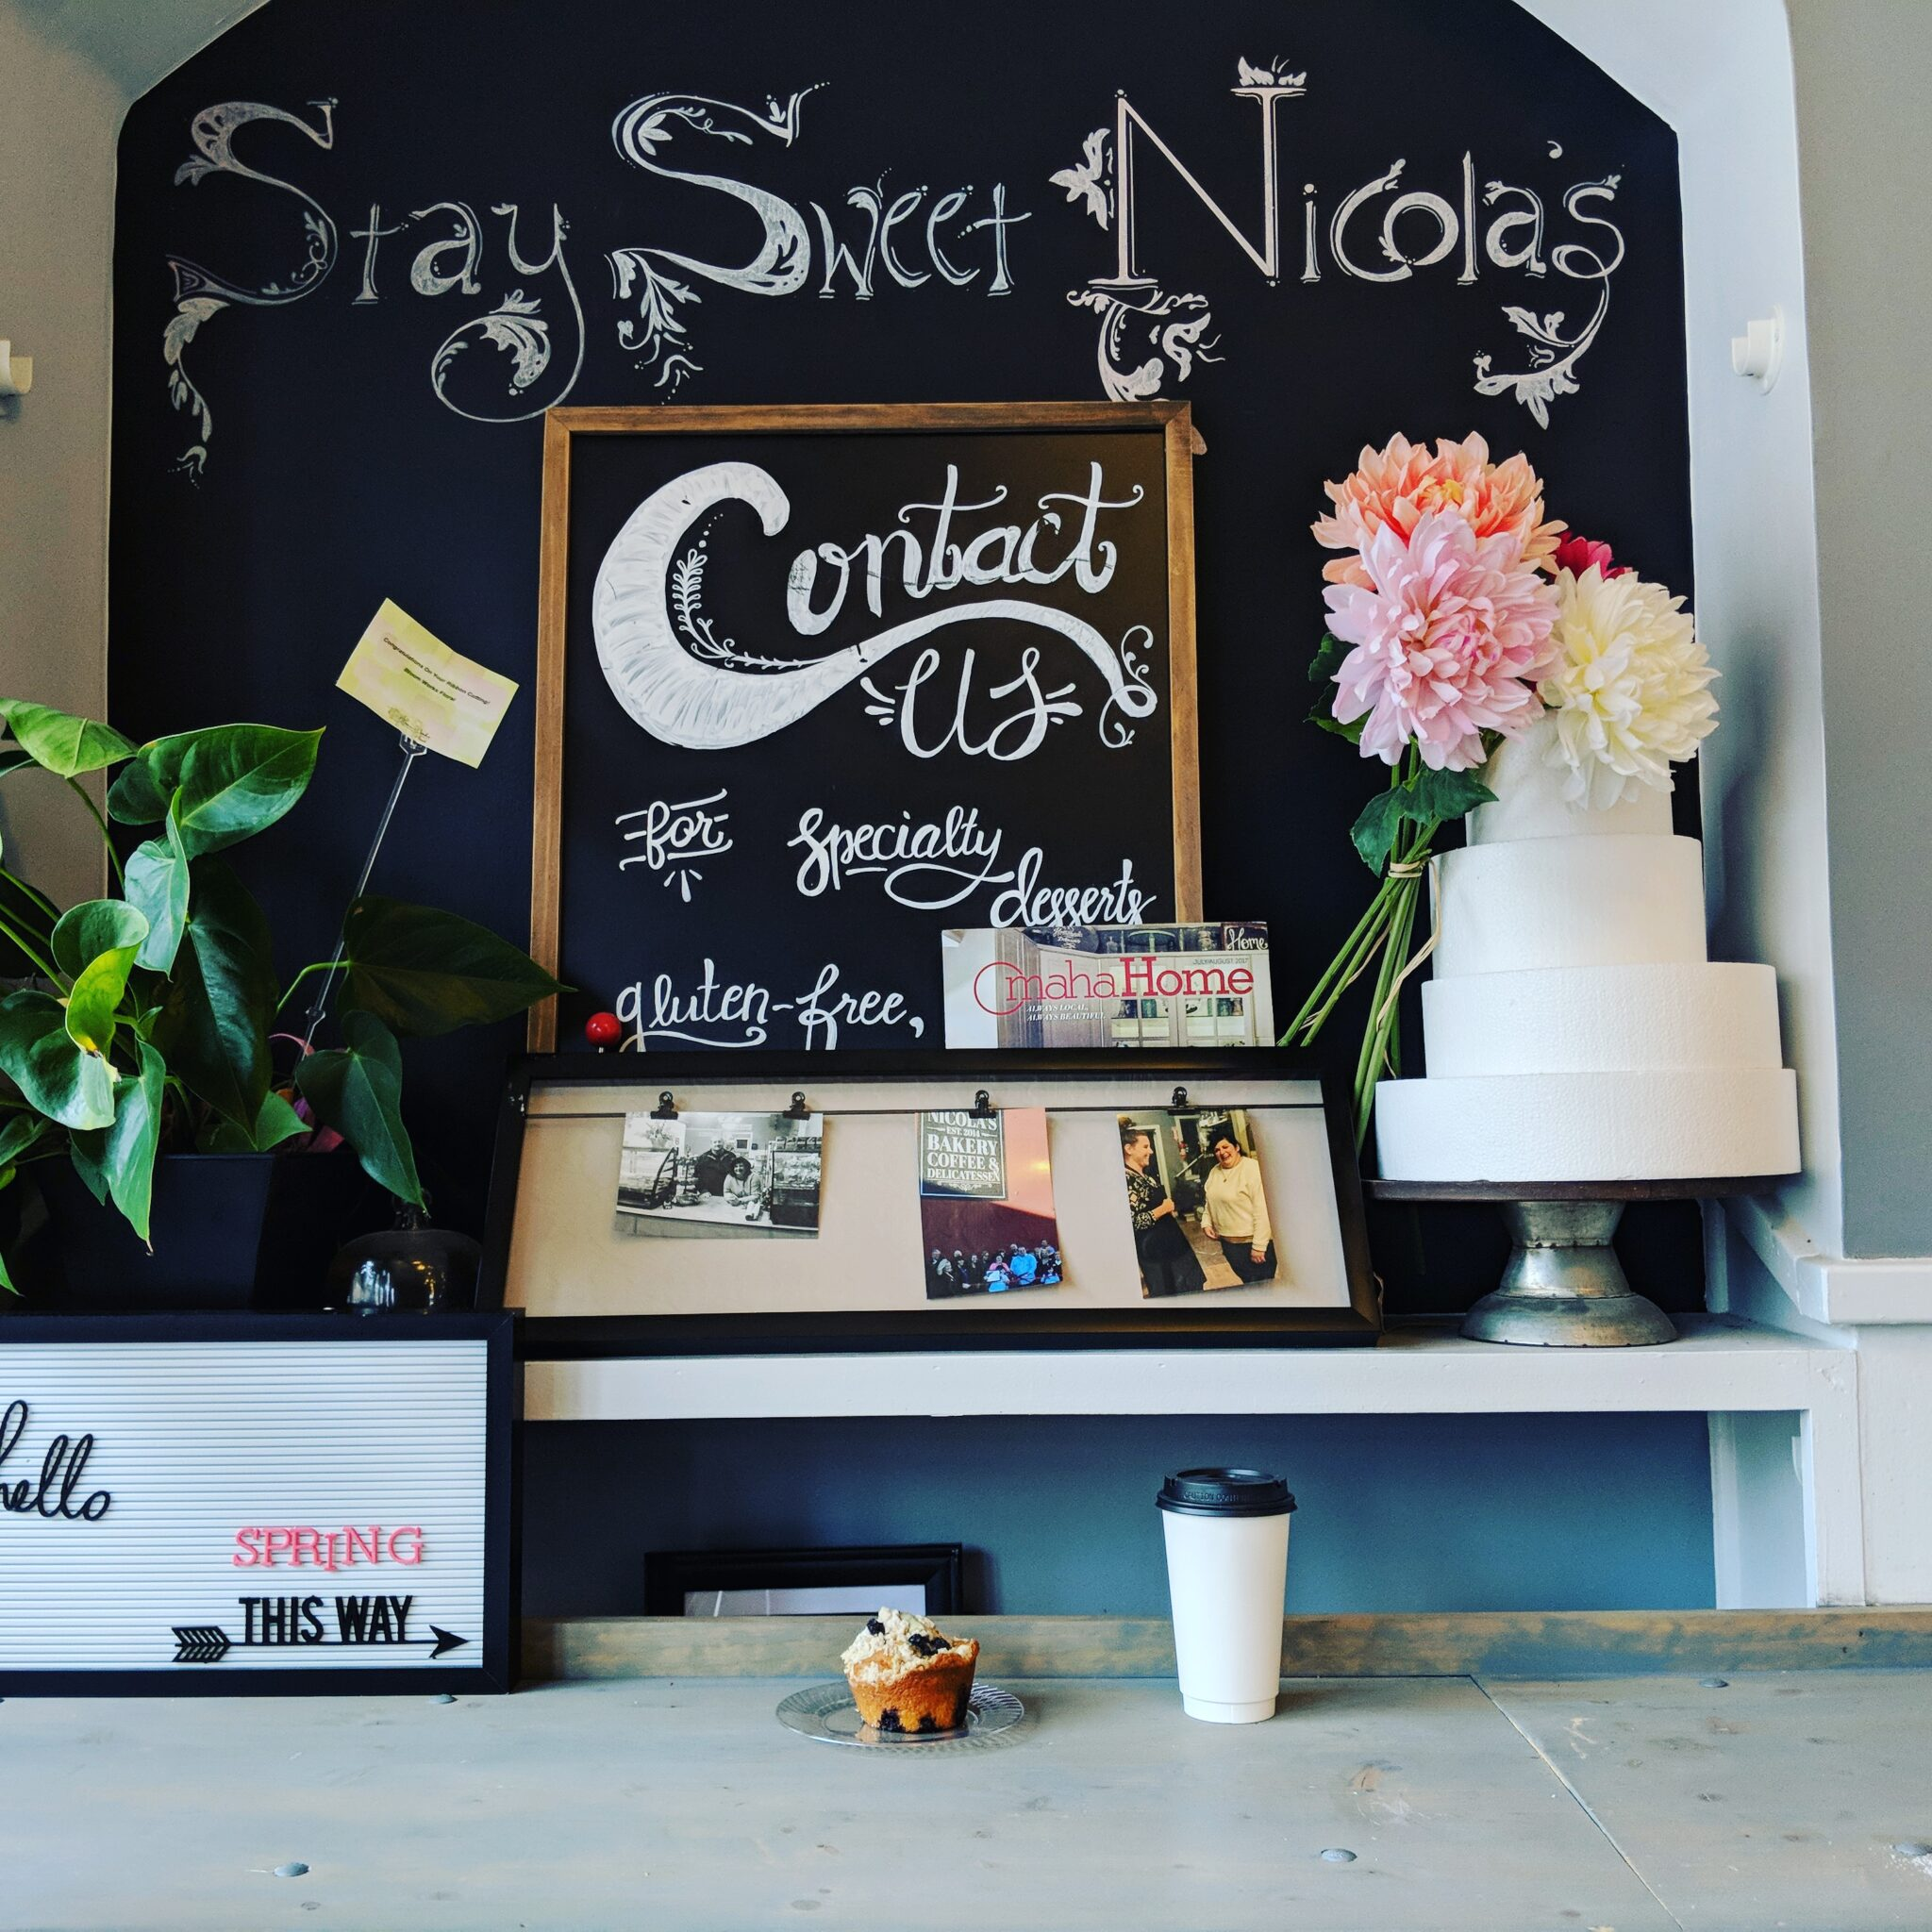 Stay Sweet Nicola's where to eat in Council Bluffs